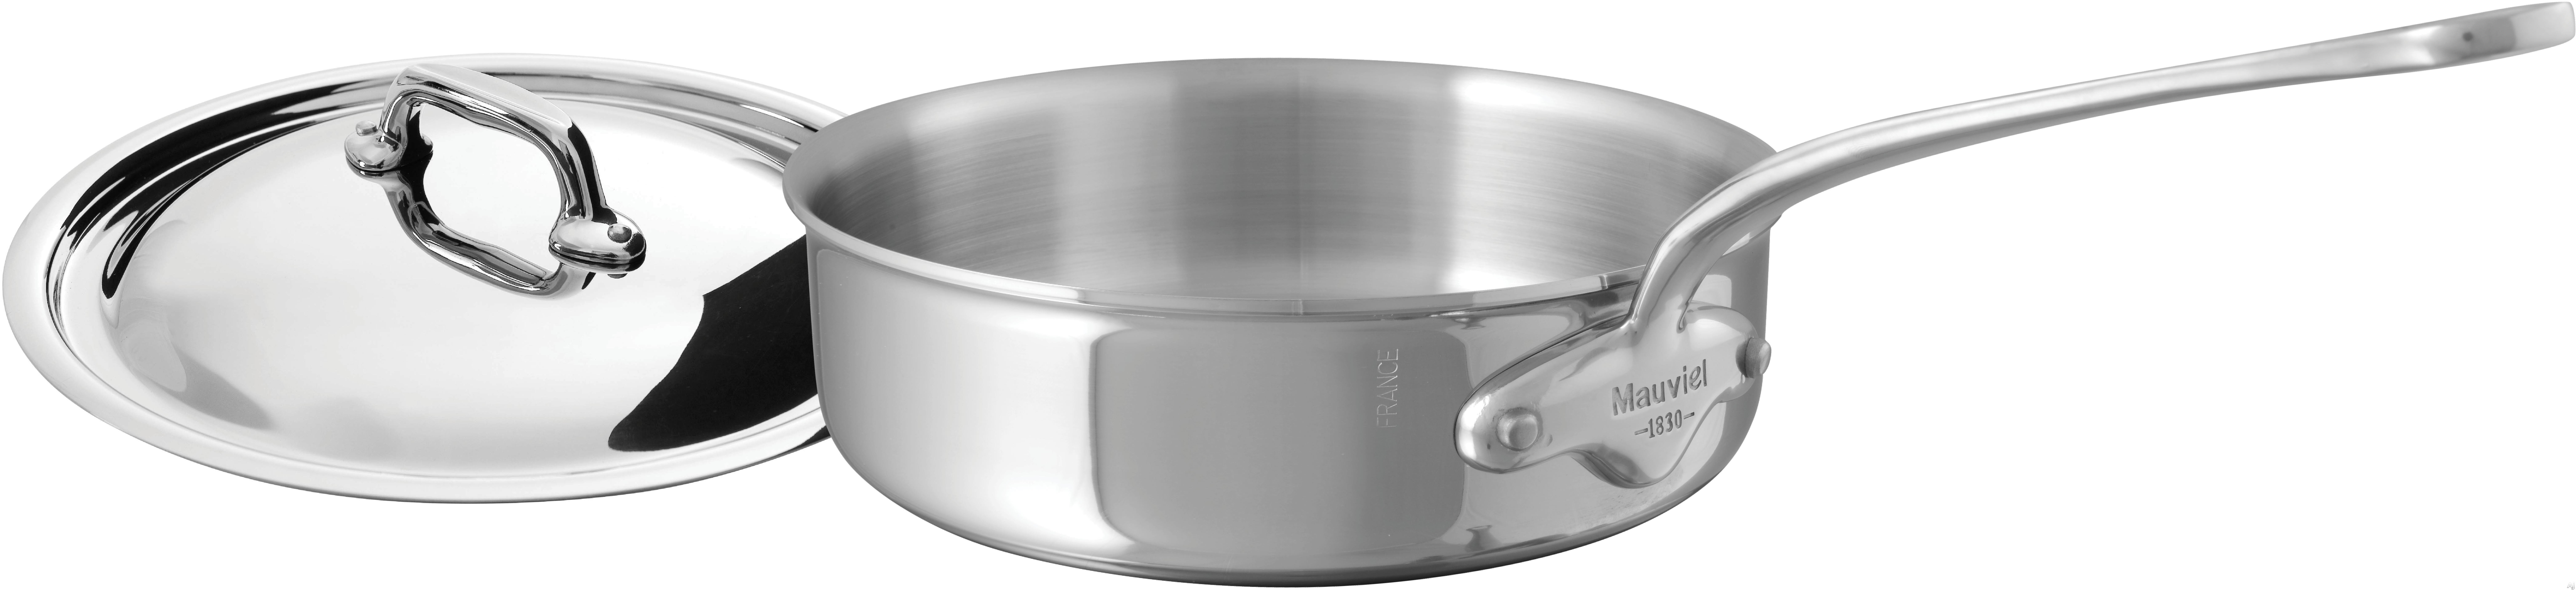 Mauviel 521125 M'Cook 3-2/5 Quart Saute Pan and Lid with 5-Ply Stainless Steel, High Performance and Induction Suitable